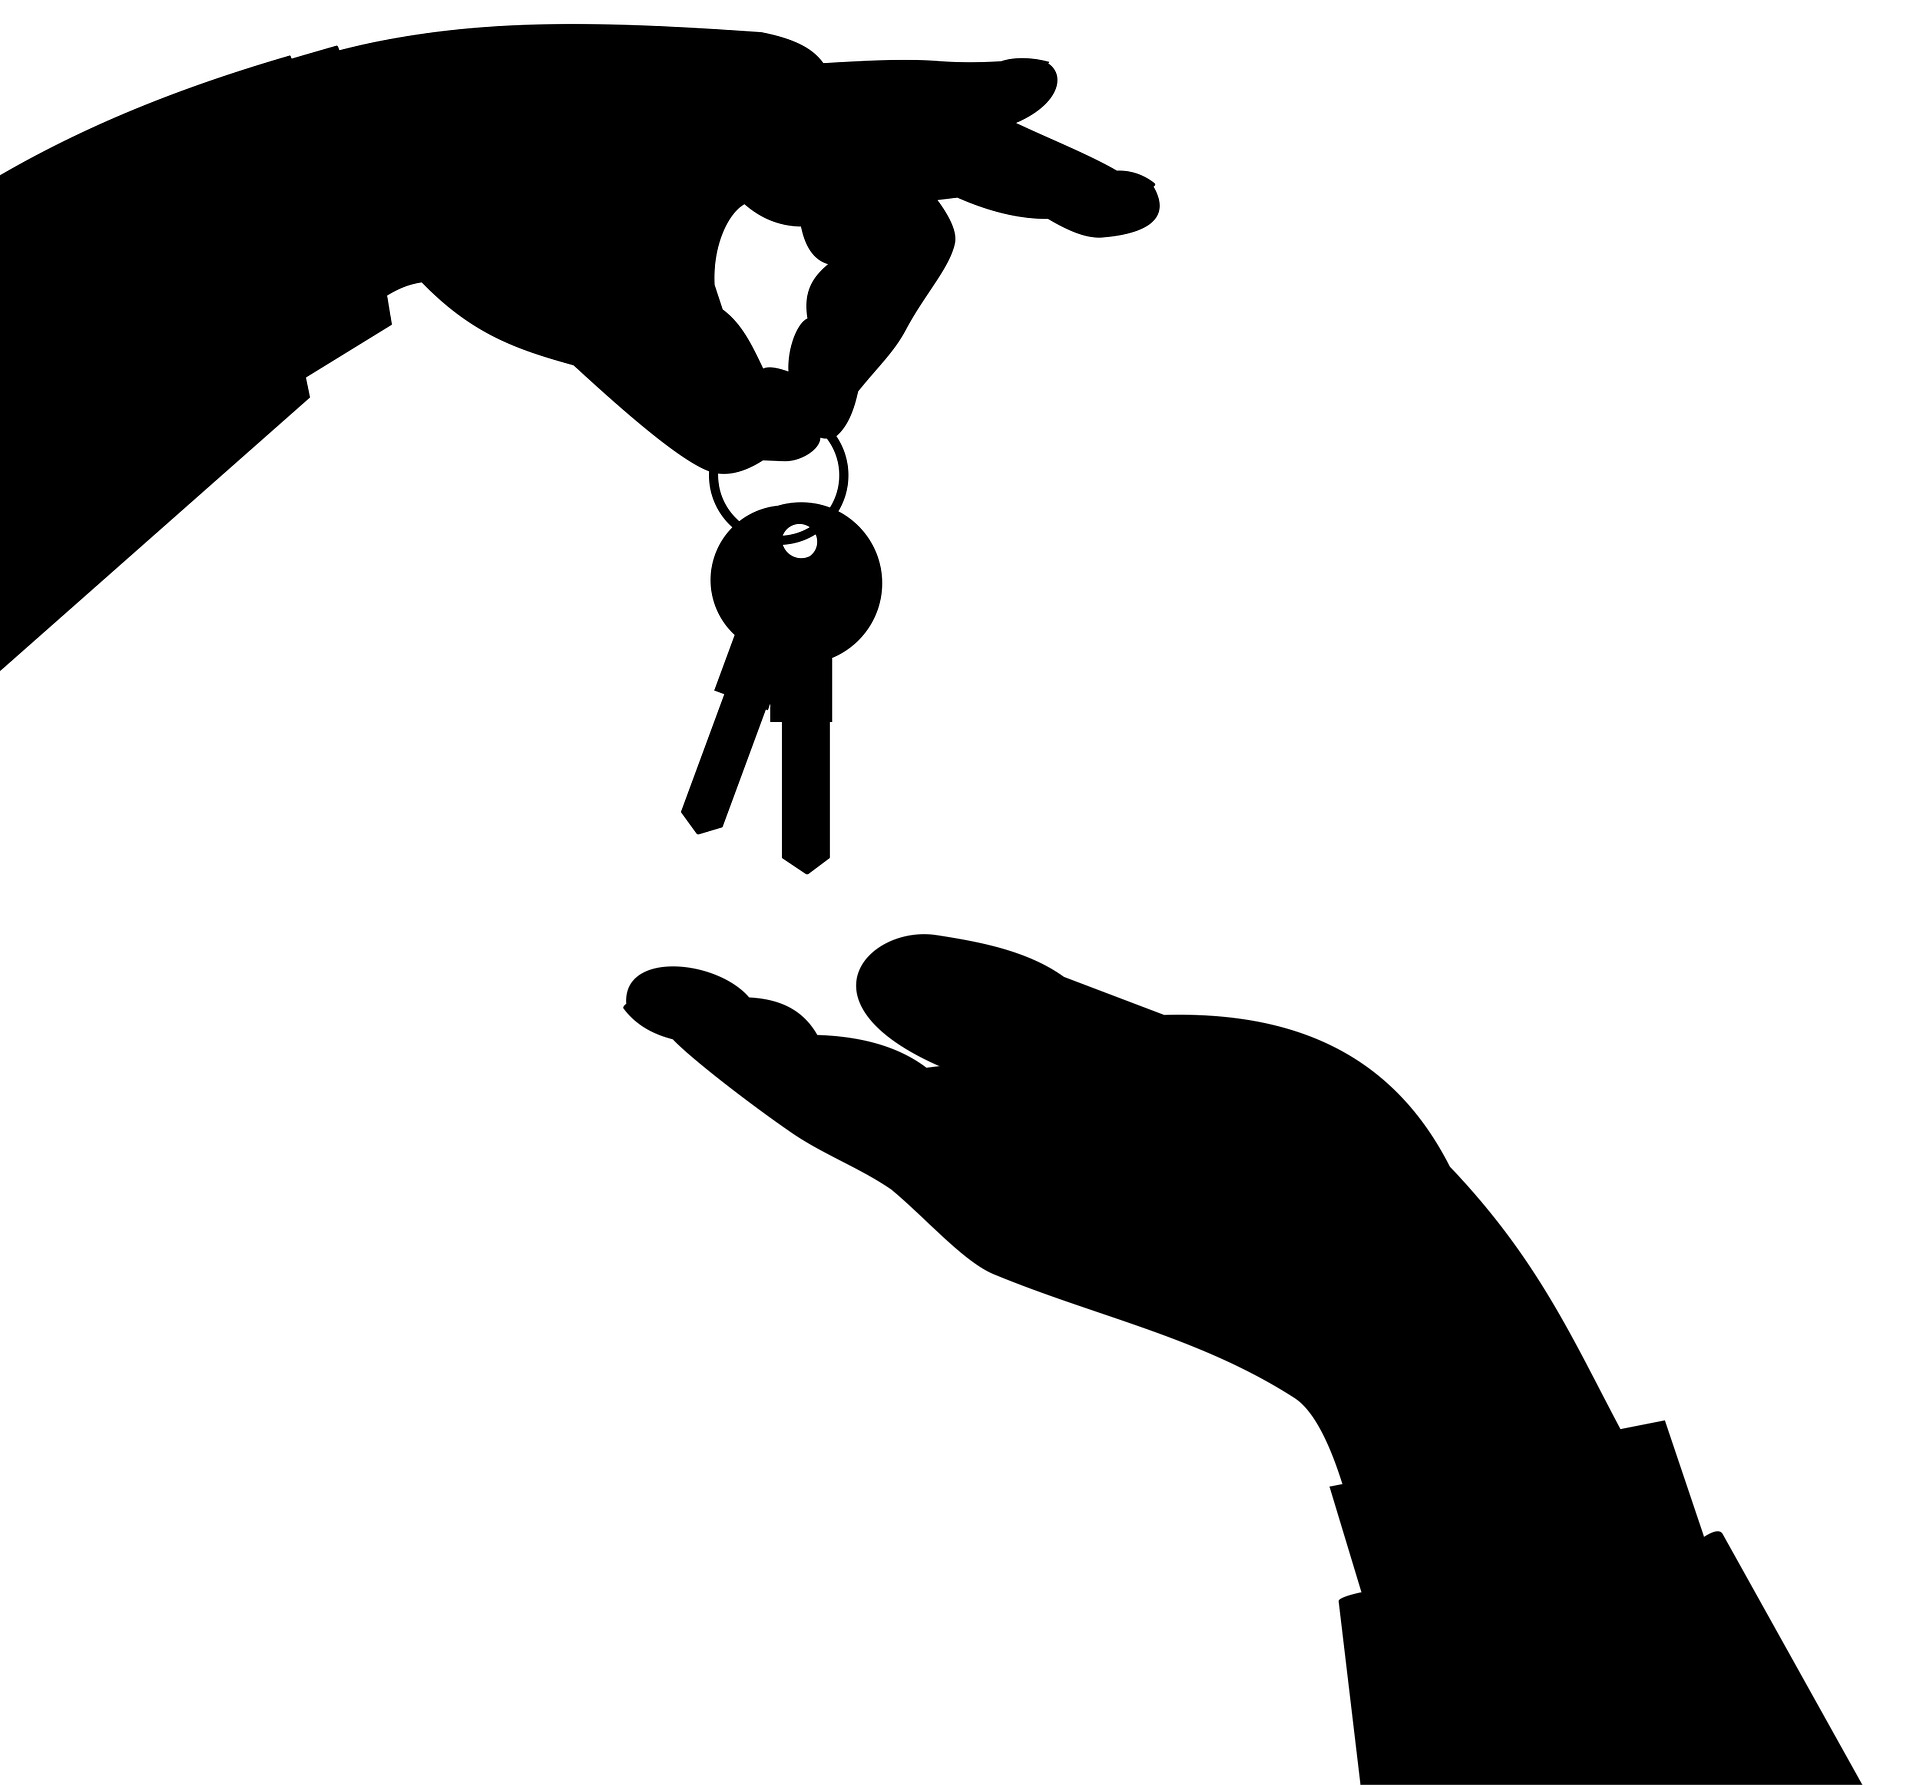 A silhouette of one person handing keys over to another.